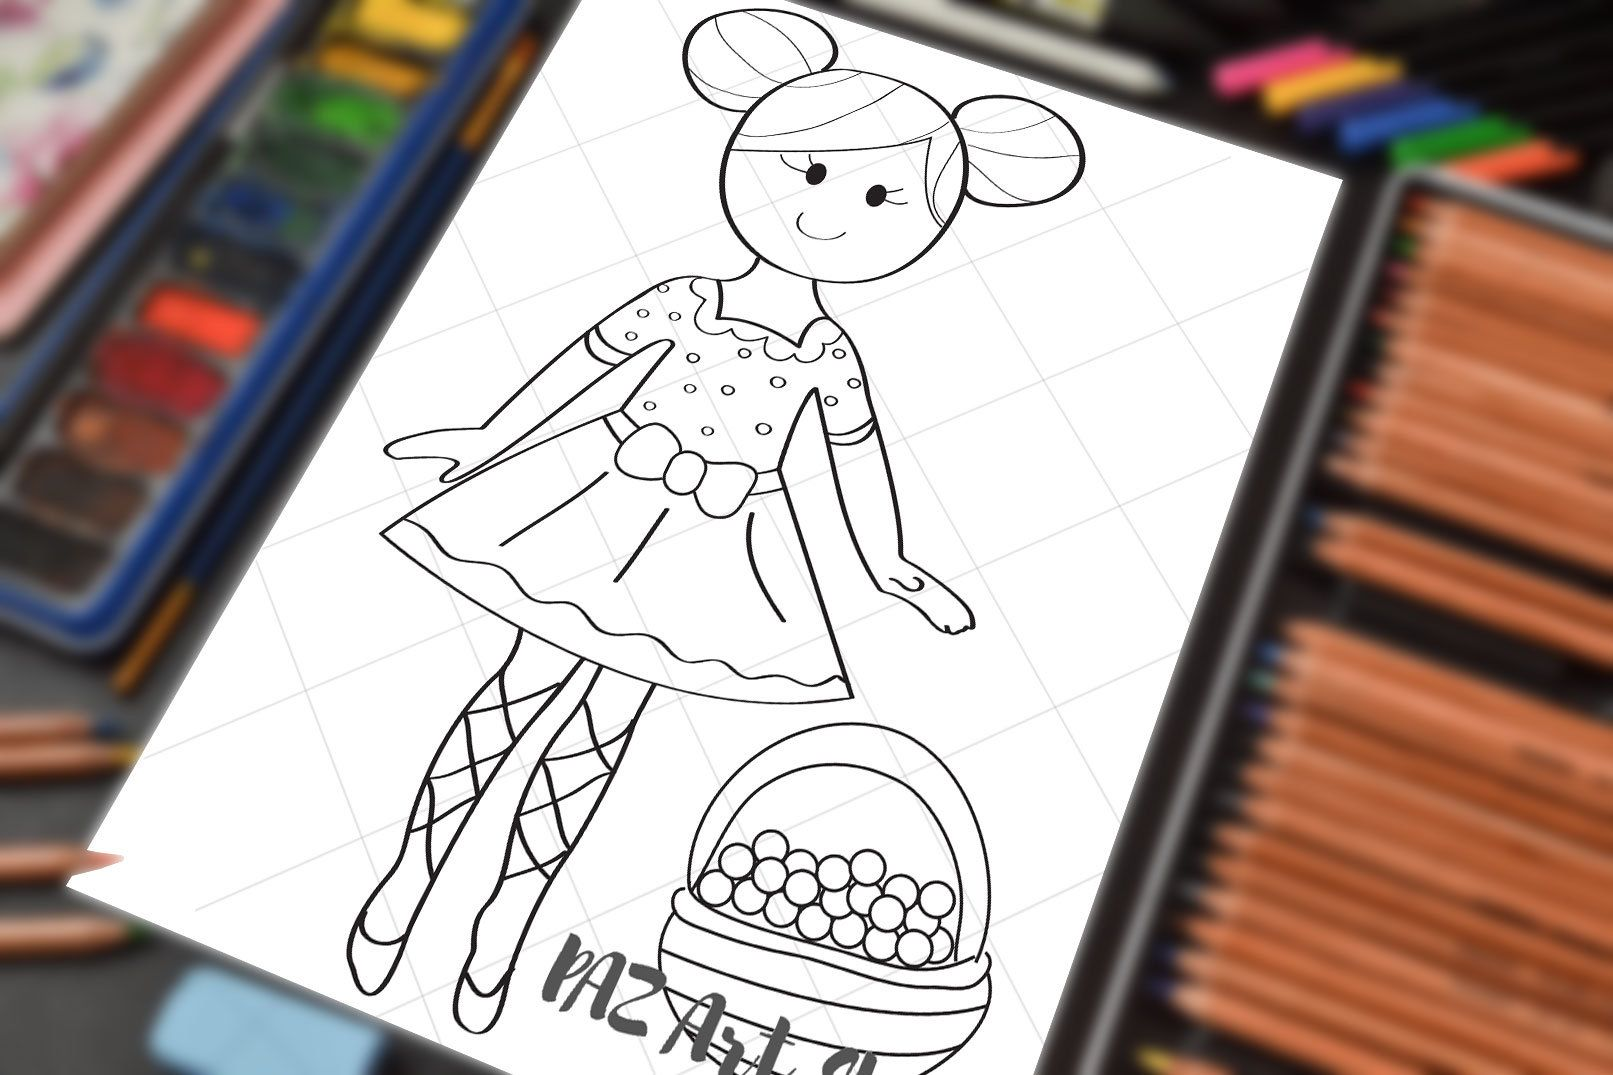 Country Girl Coloring Page For Children Coloring Pages For Girls Coloring Pages Diy Digital Paper